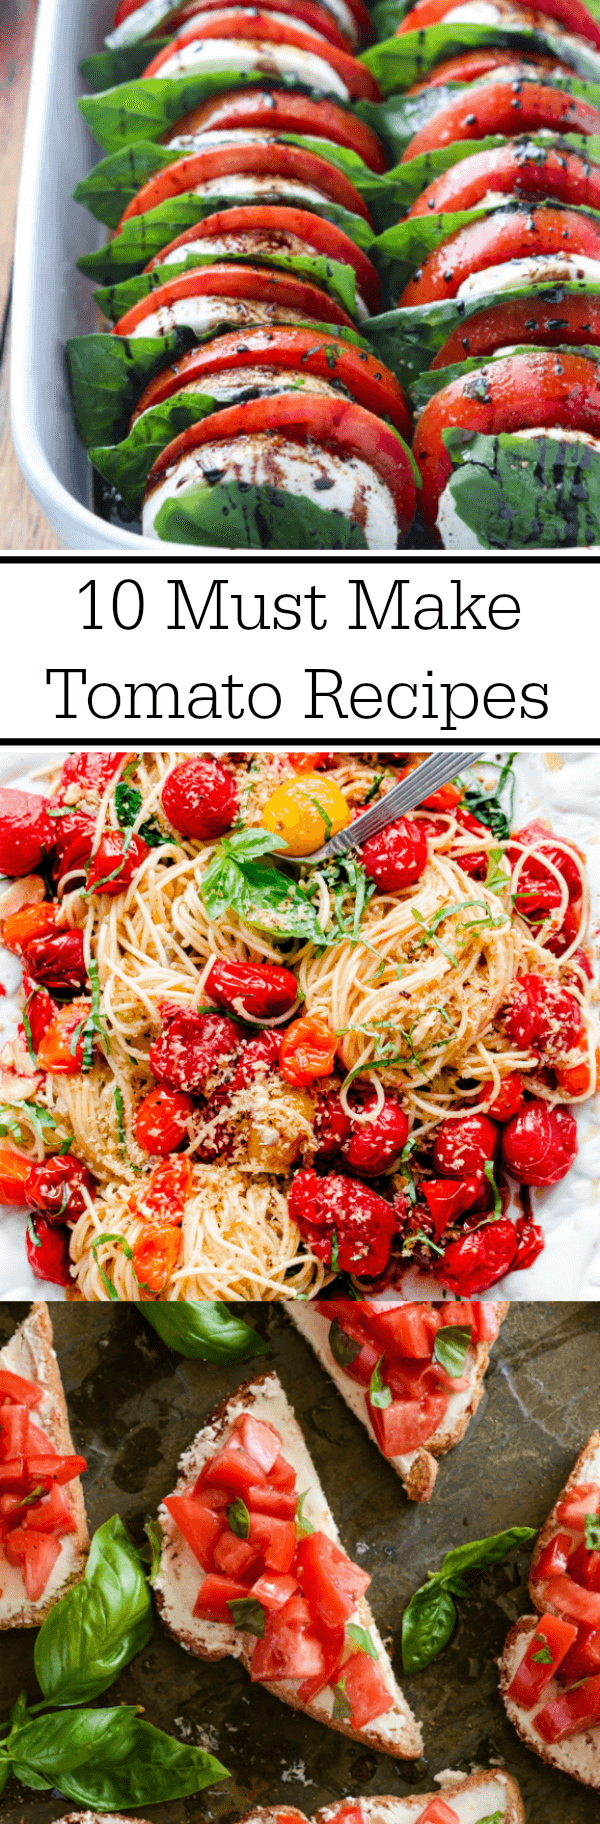 10 Must Make Tomato Recipes Collage